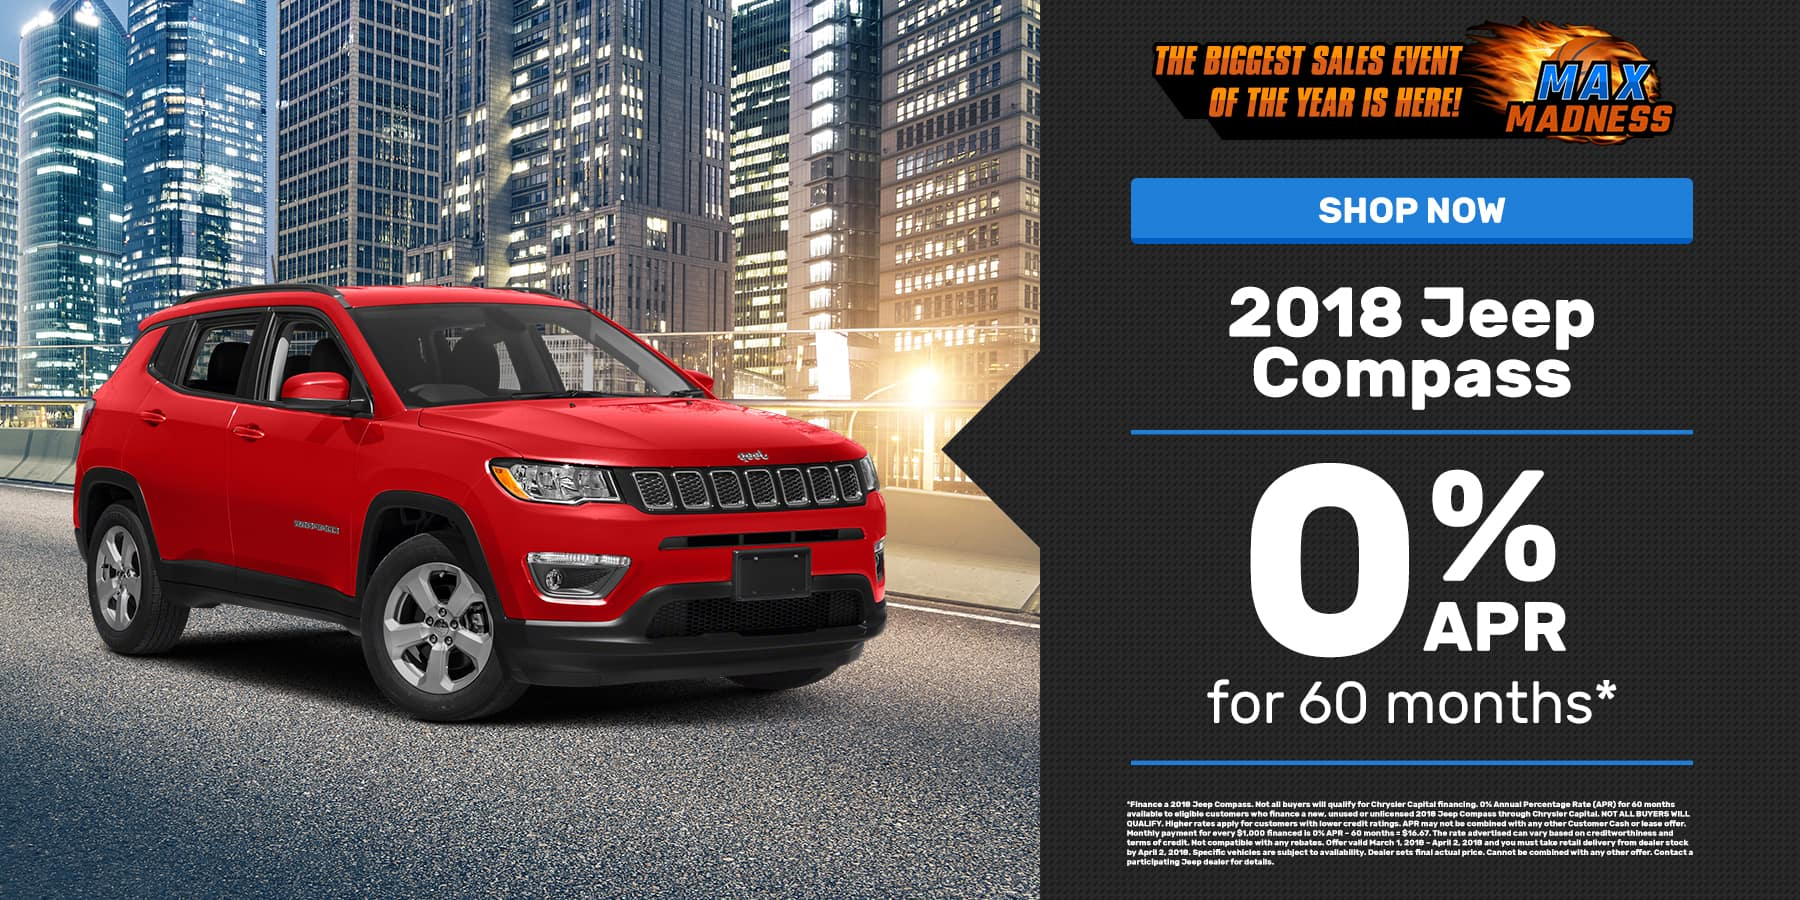 Mar. 2018 Jeep Compass Offer Slide